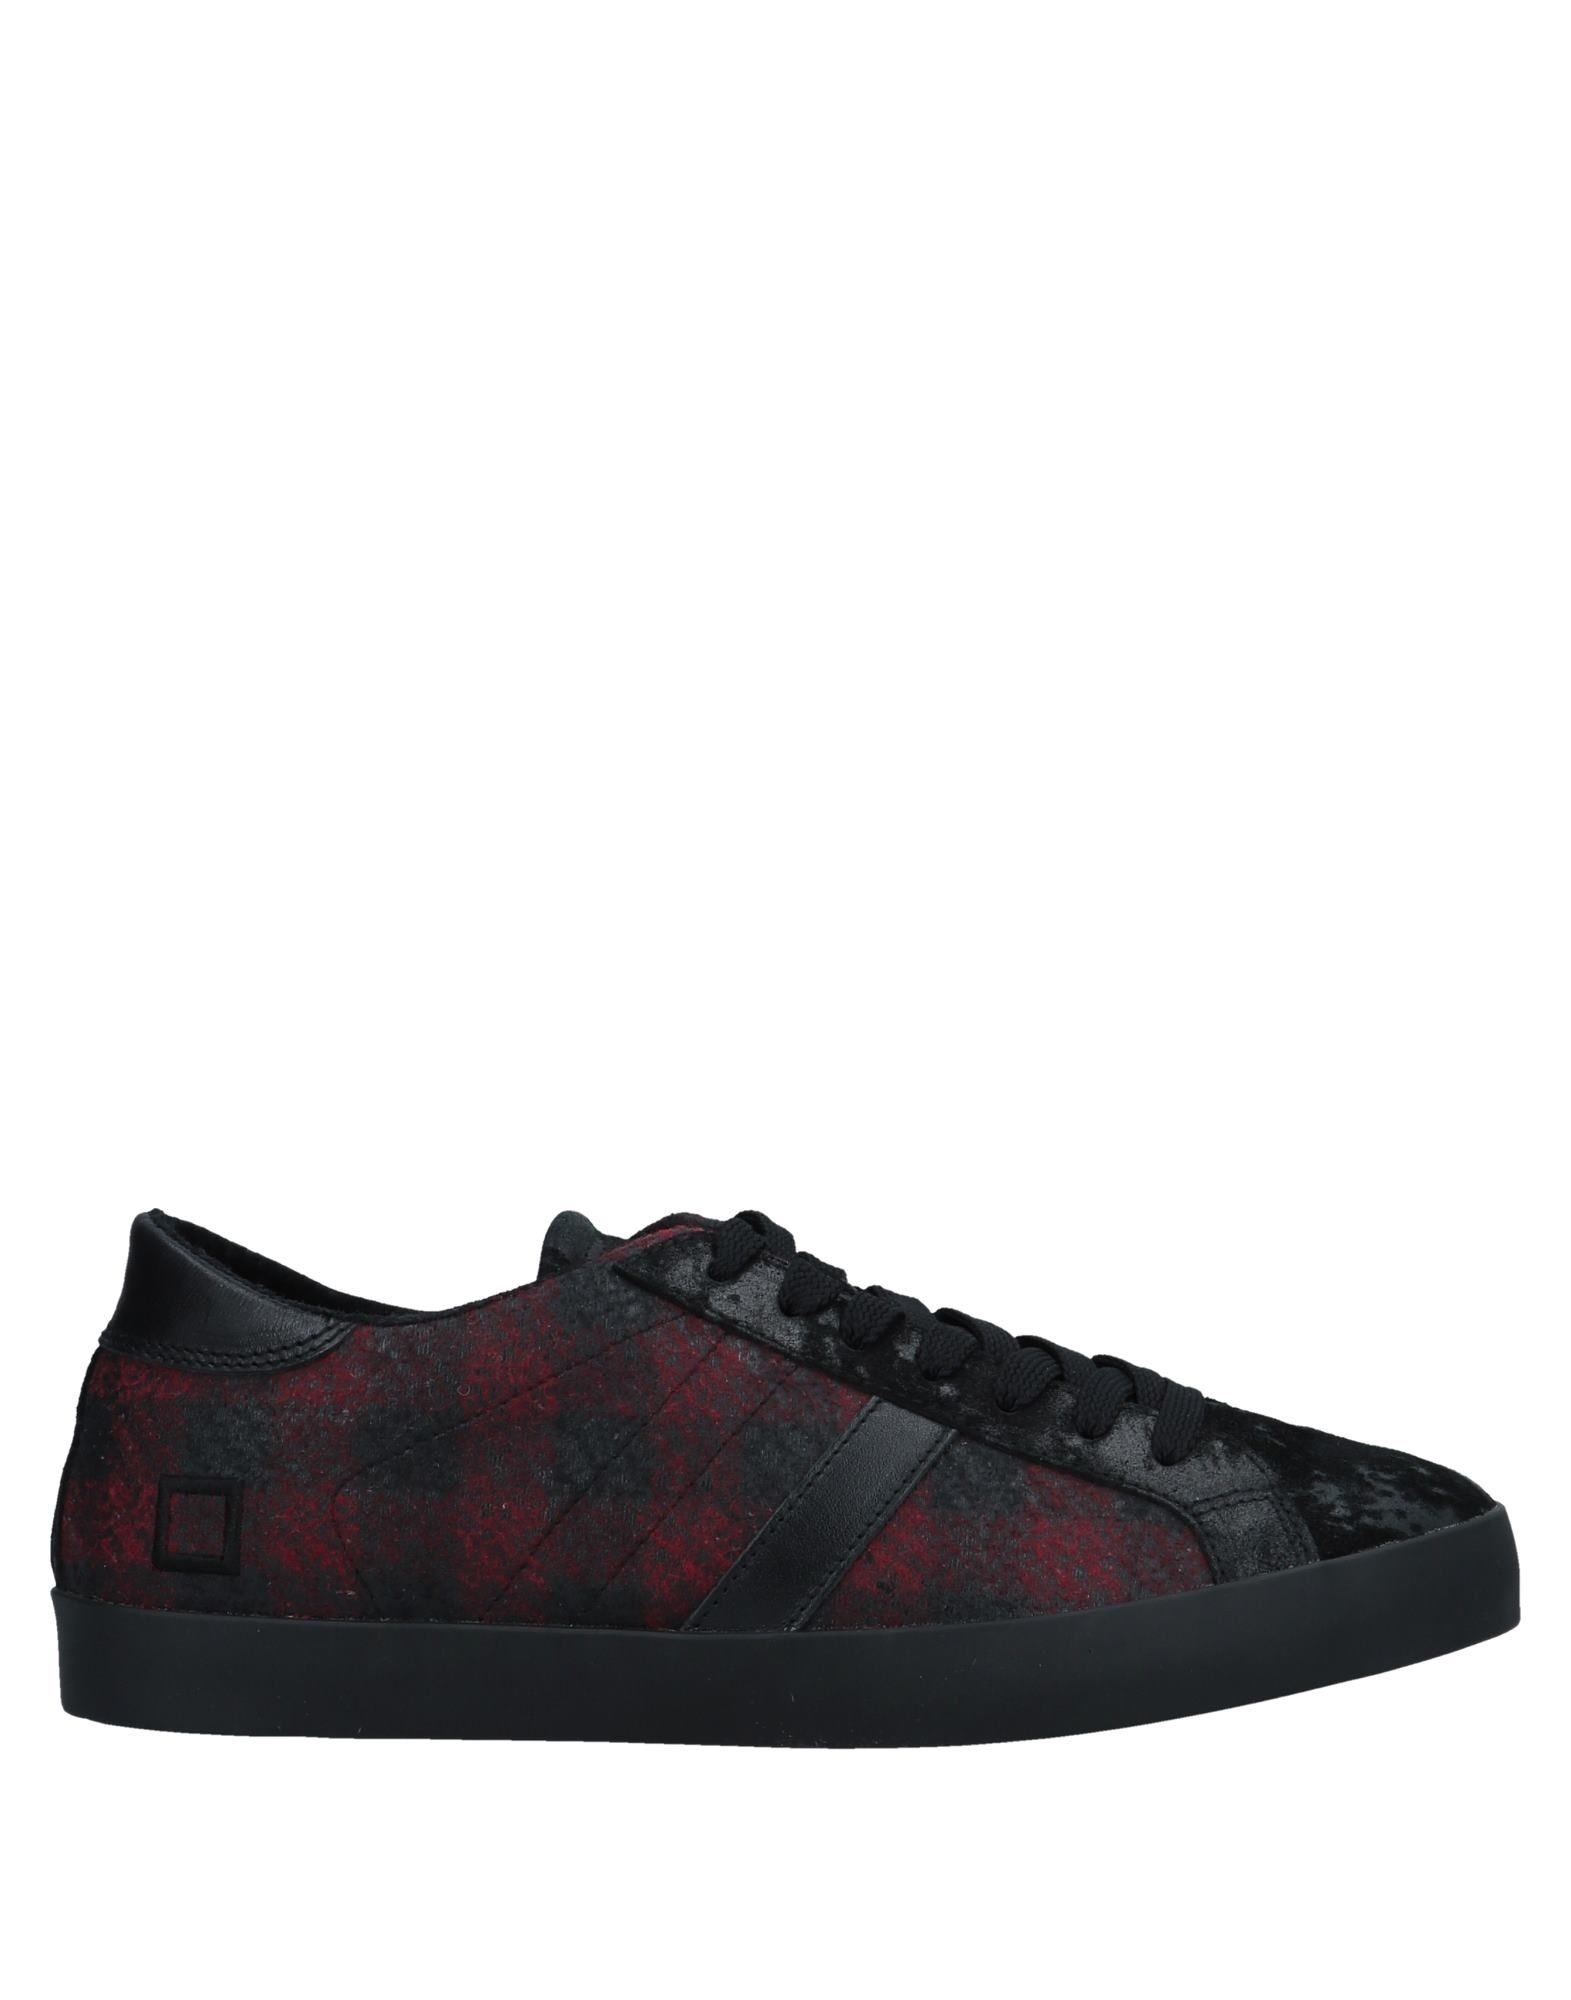 D.A.T.E. Sneakers - Men D.A.T.E. Sneakers online on 11556644BG  United Kingdom - 11556644BG on f9dc6d